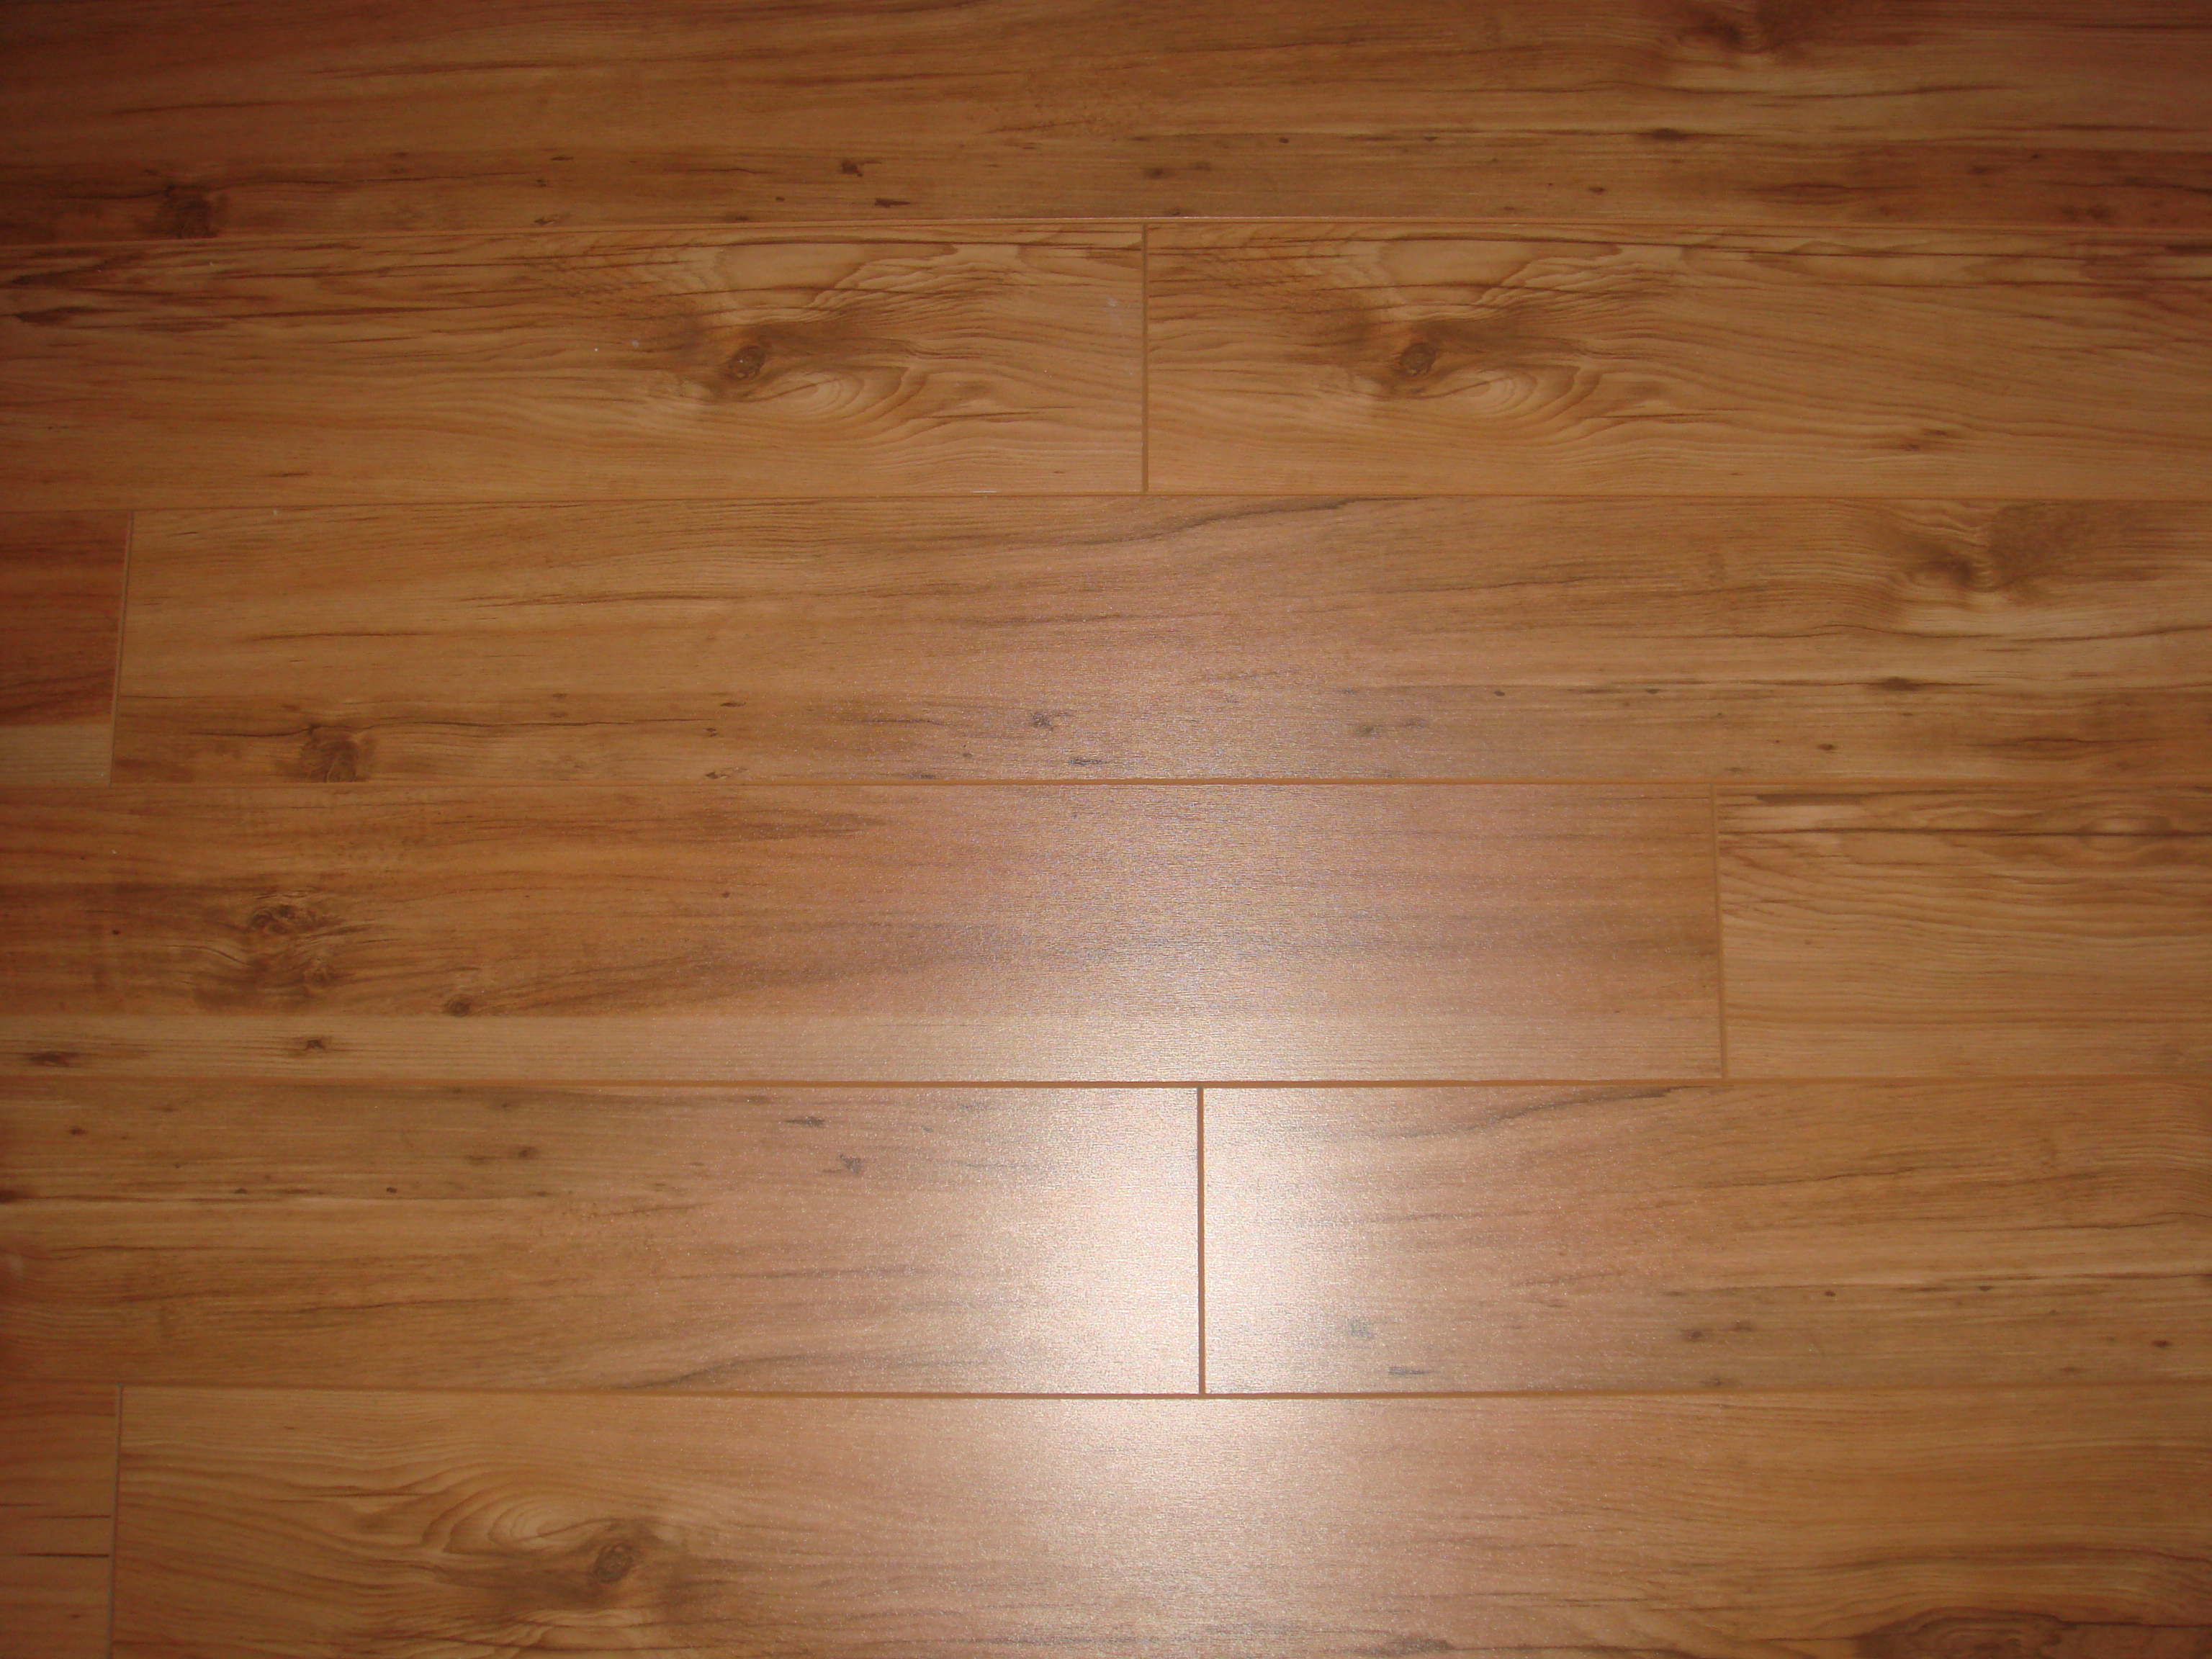 The Pros And Cons Of Laminate Wood Flooring | Wood Floors Plus